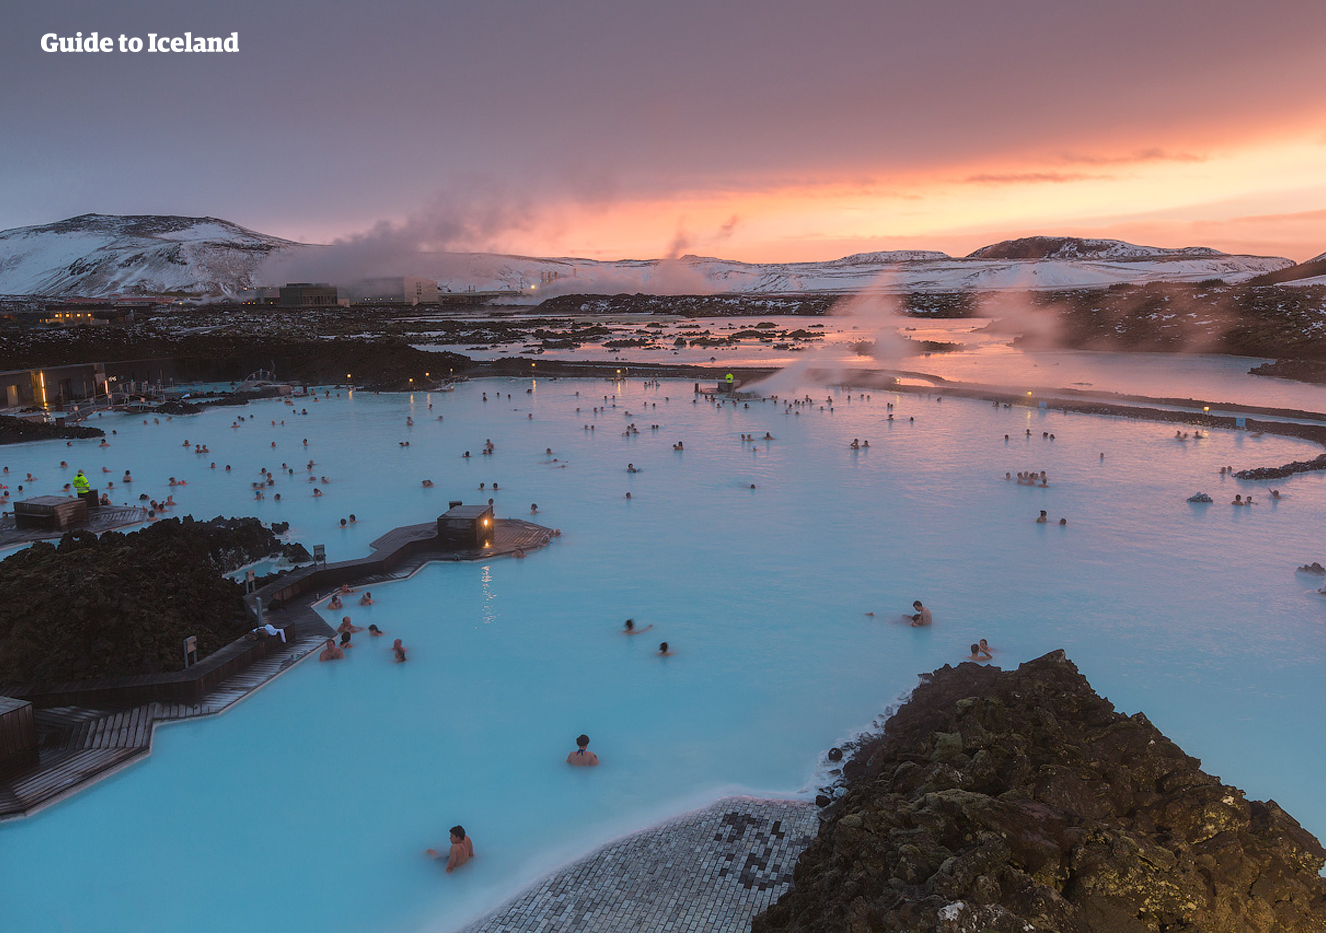 The geothermal waters of the Blue Lagoon is rich in minerals that will surely rejuvenate you after a long journey